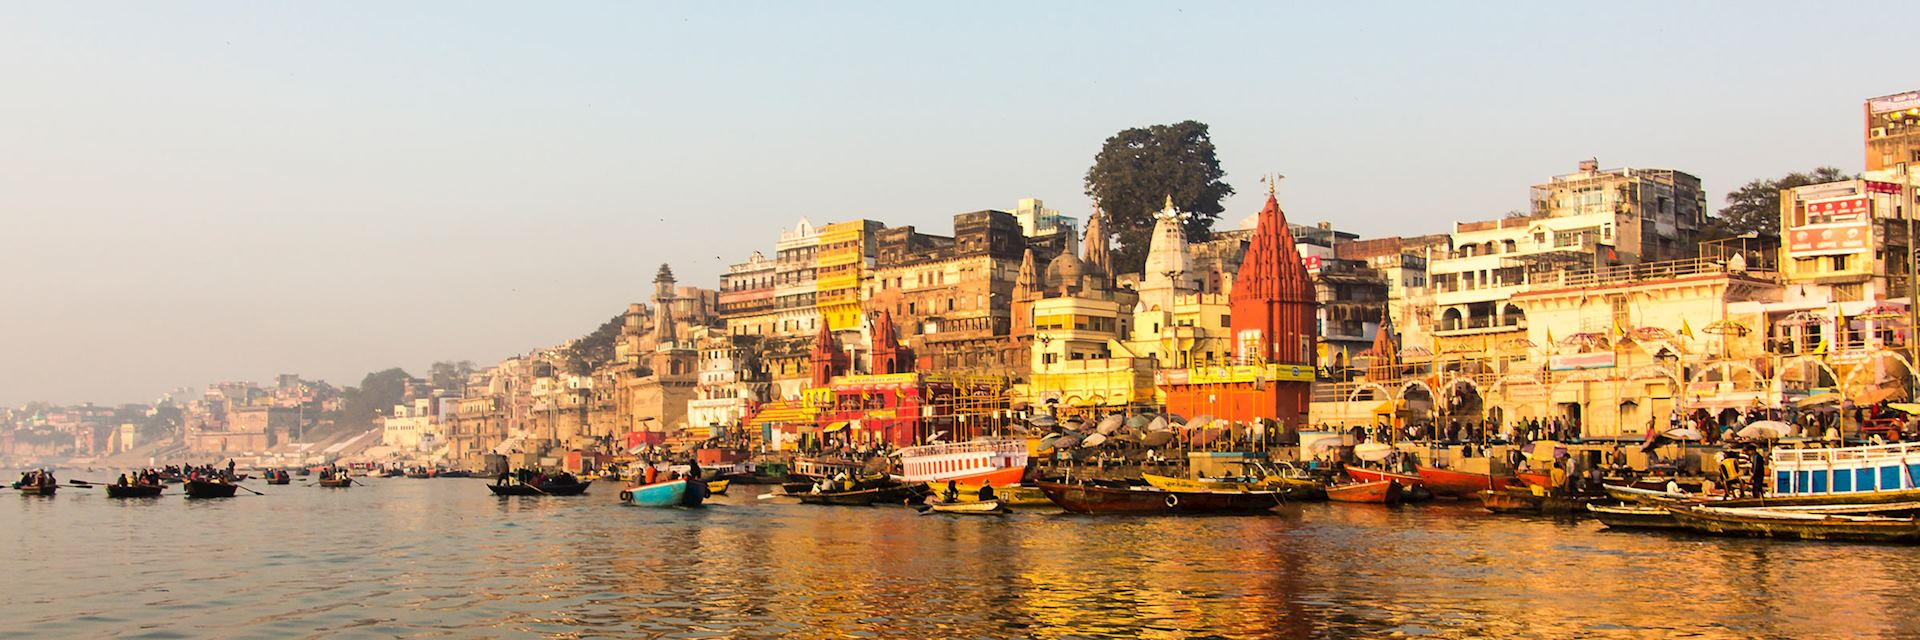 Life on the Ganges in Varanasi